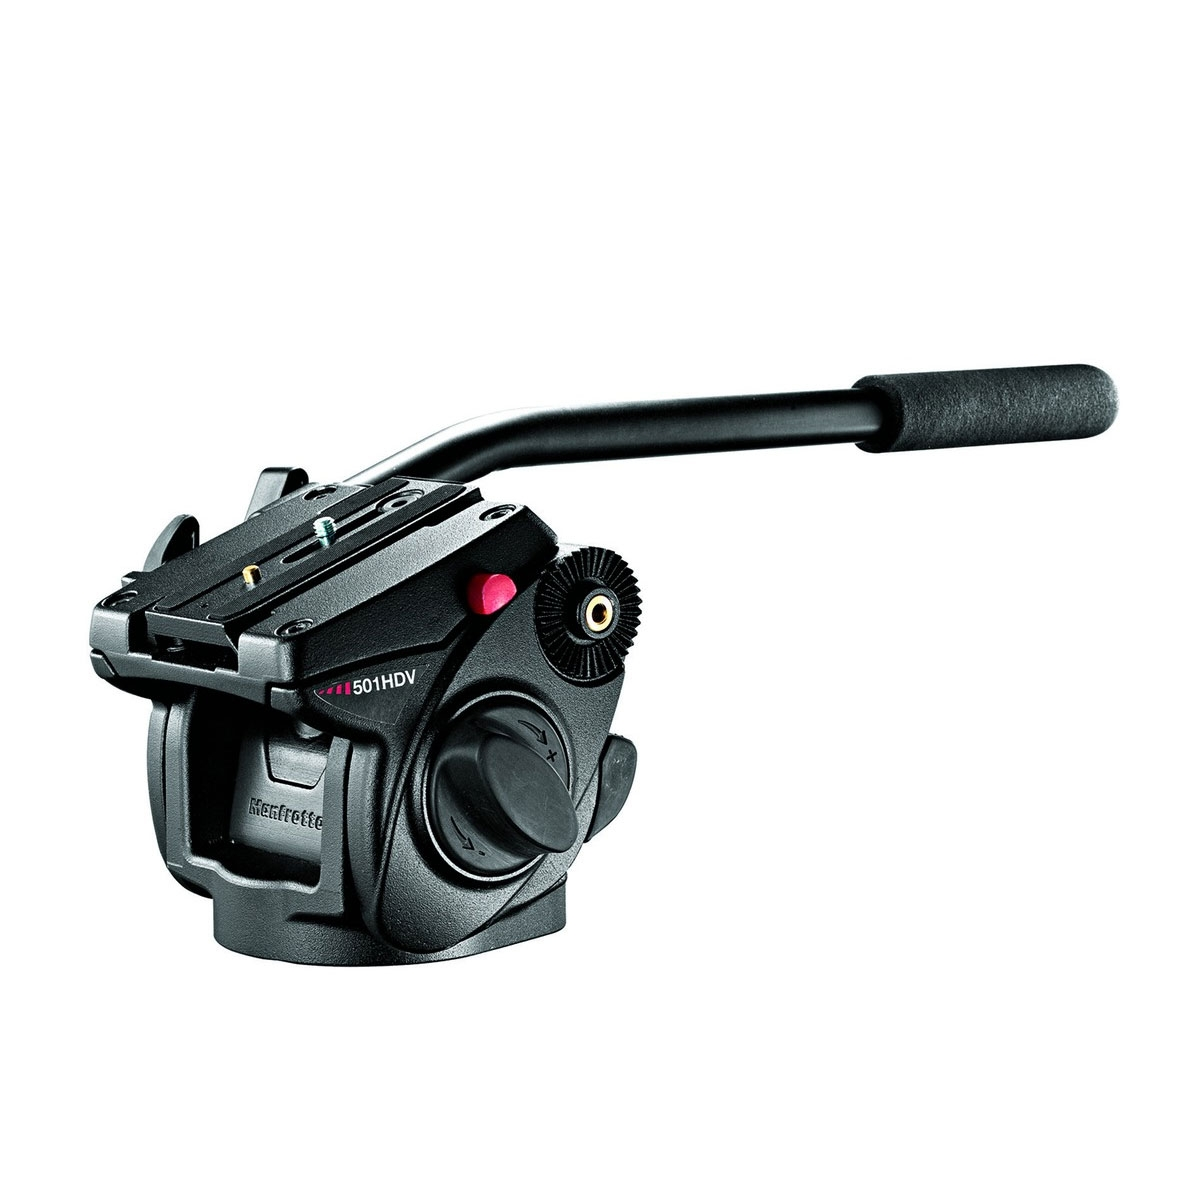 Manfrotto 501 Hdv Head Uttings Co Uk